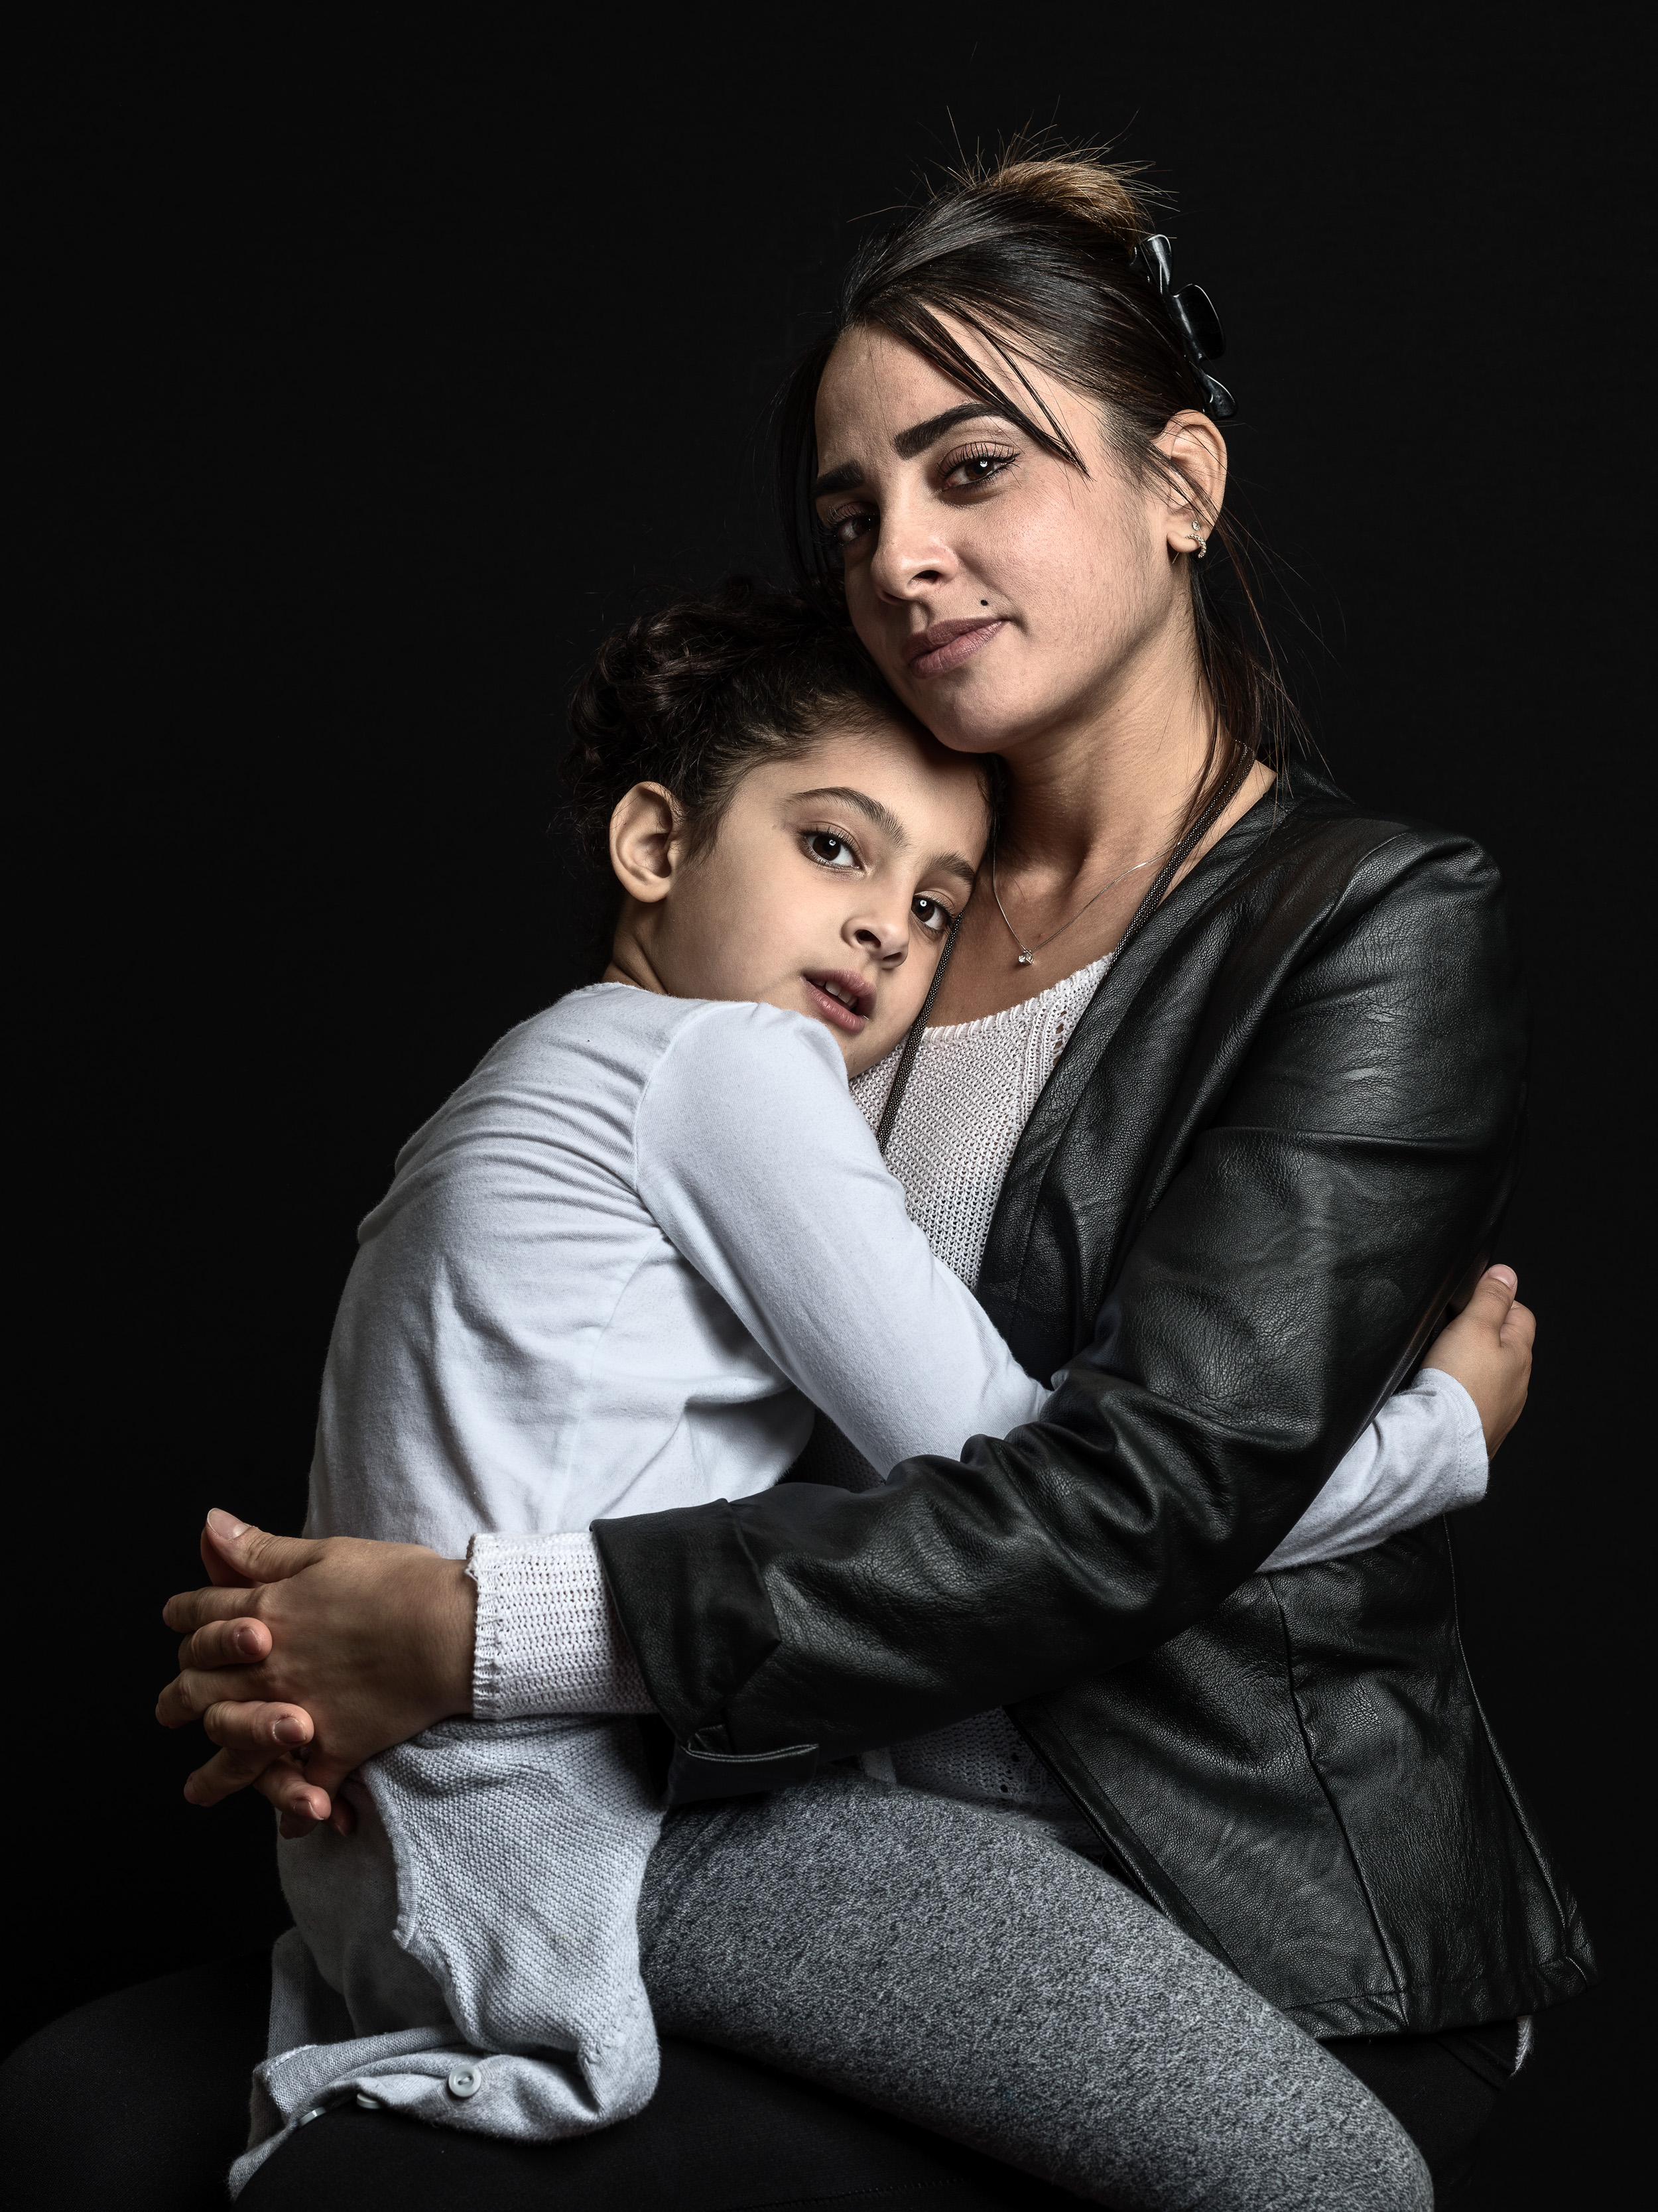 Hager Ben Aouissi (36) with Kenza (6)Survivor of Nice, Promenade des Anglais truck attack and mother of traumatized daughter Nice, France